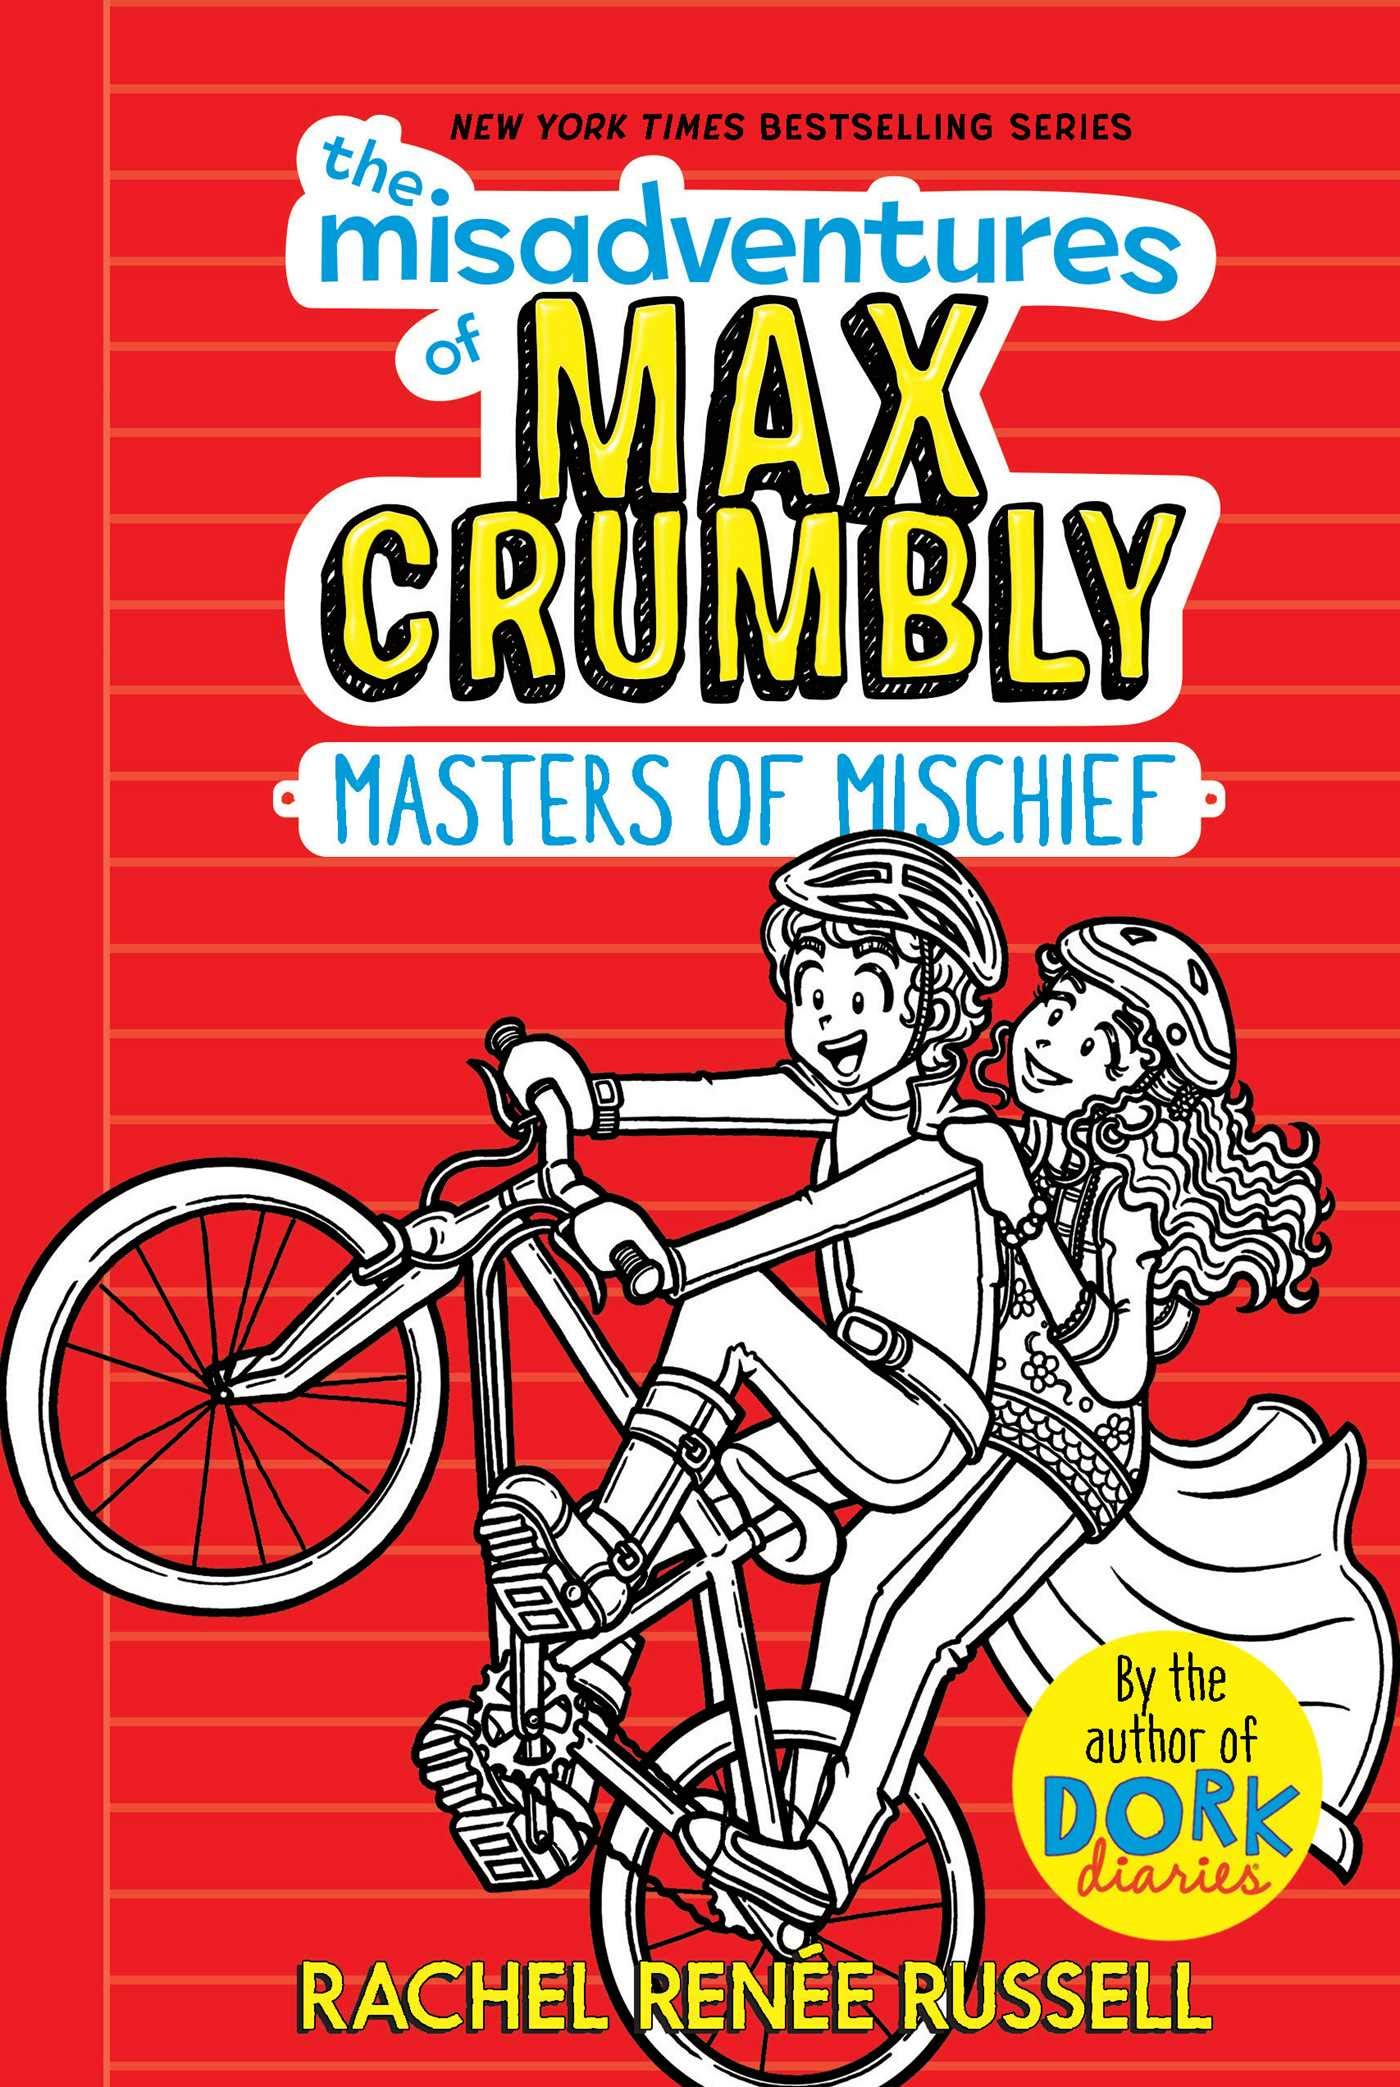 The Misadventures Of Max Crumbly 3  Masters Of Mischief  Volume 3